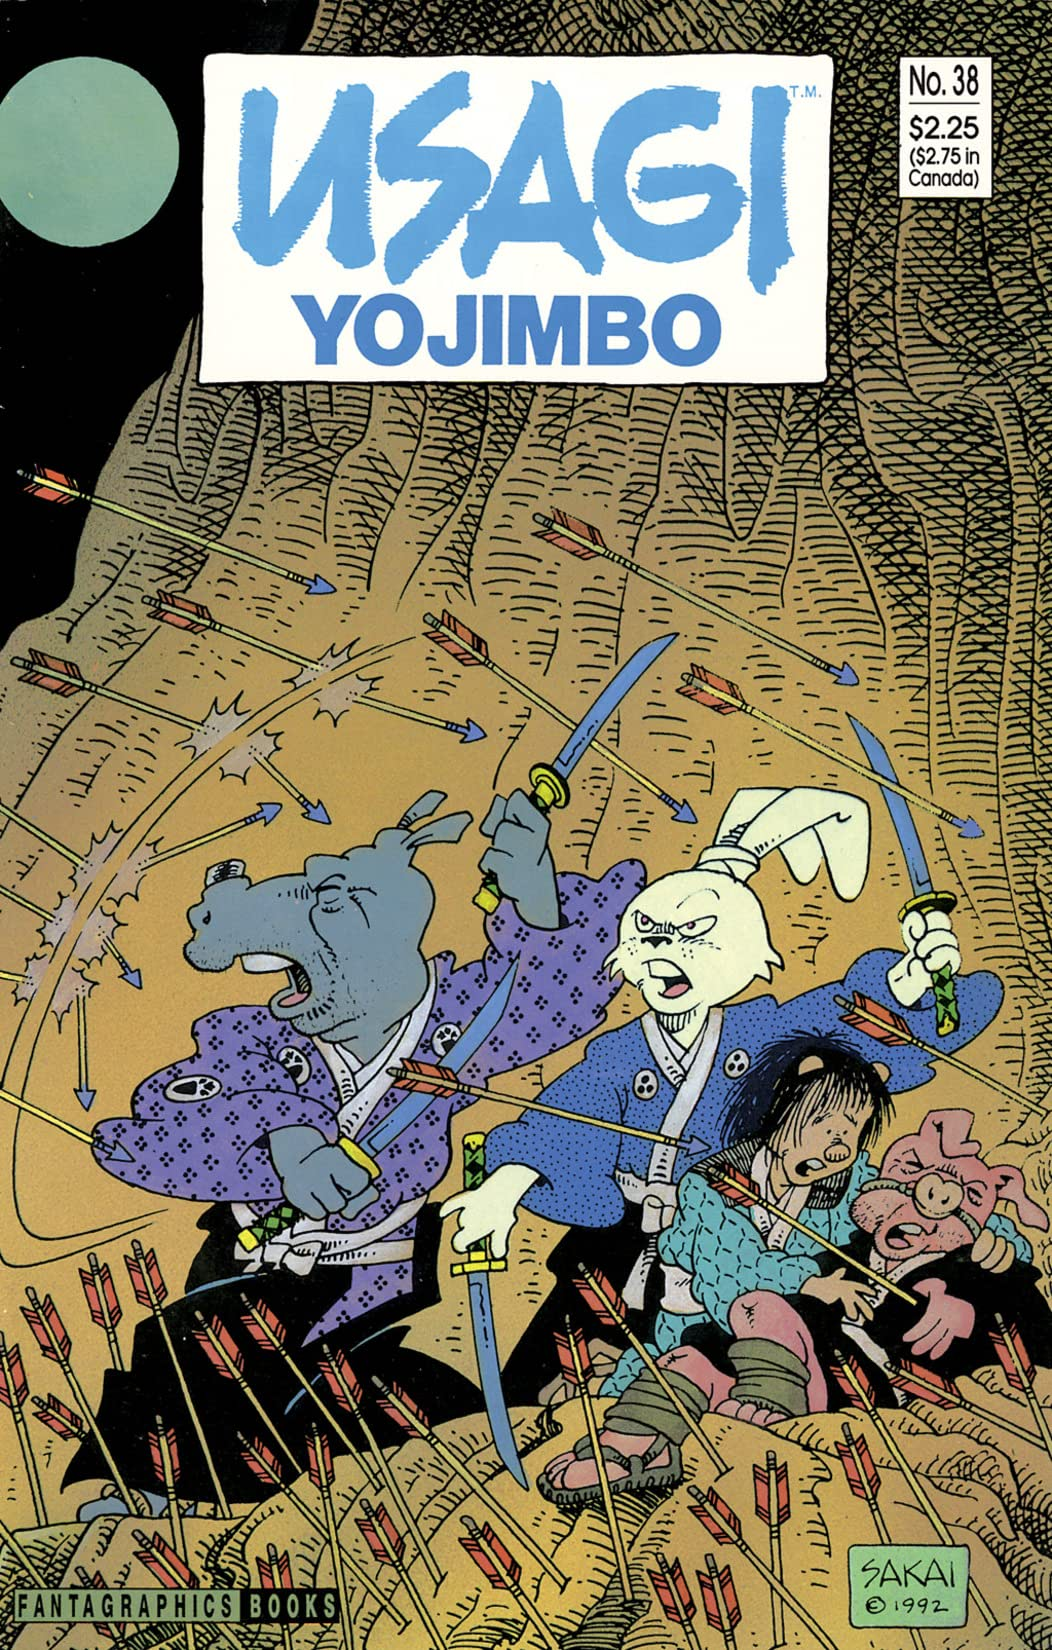 Usagi Yojimbo Vol. 1 #38